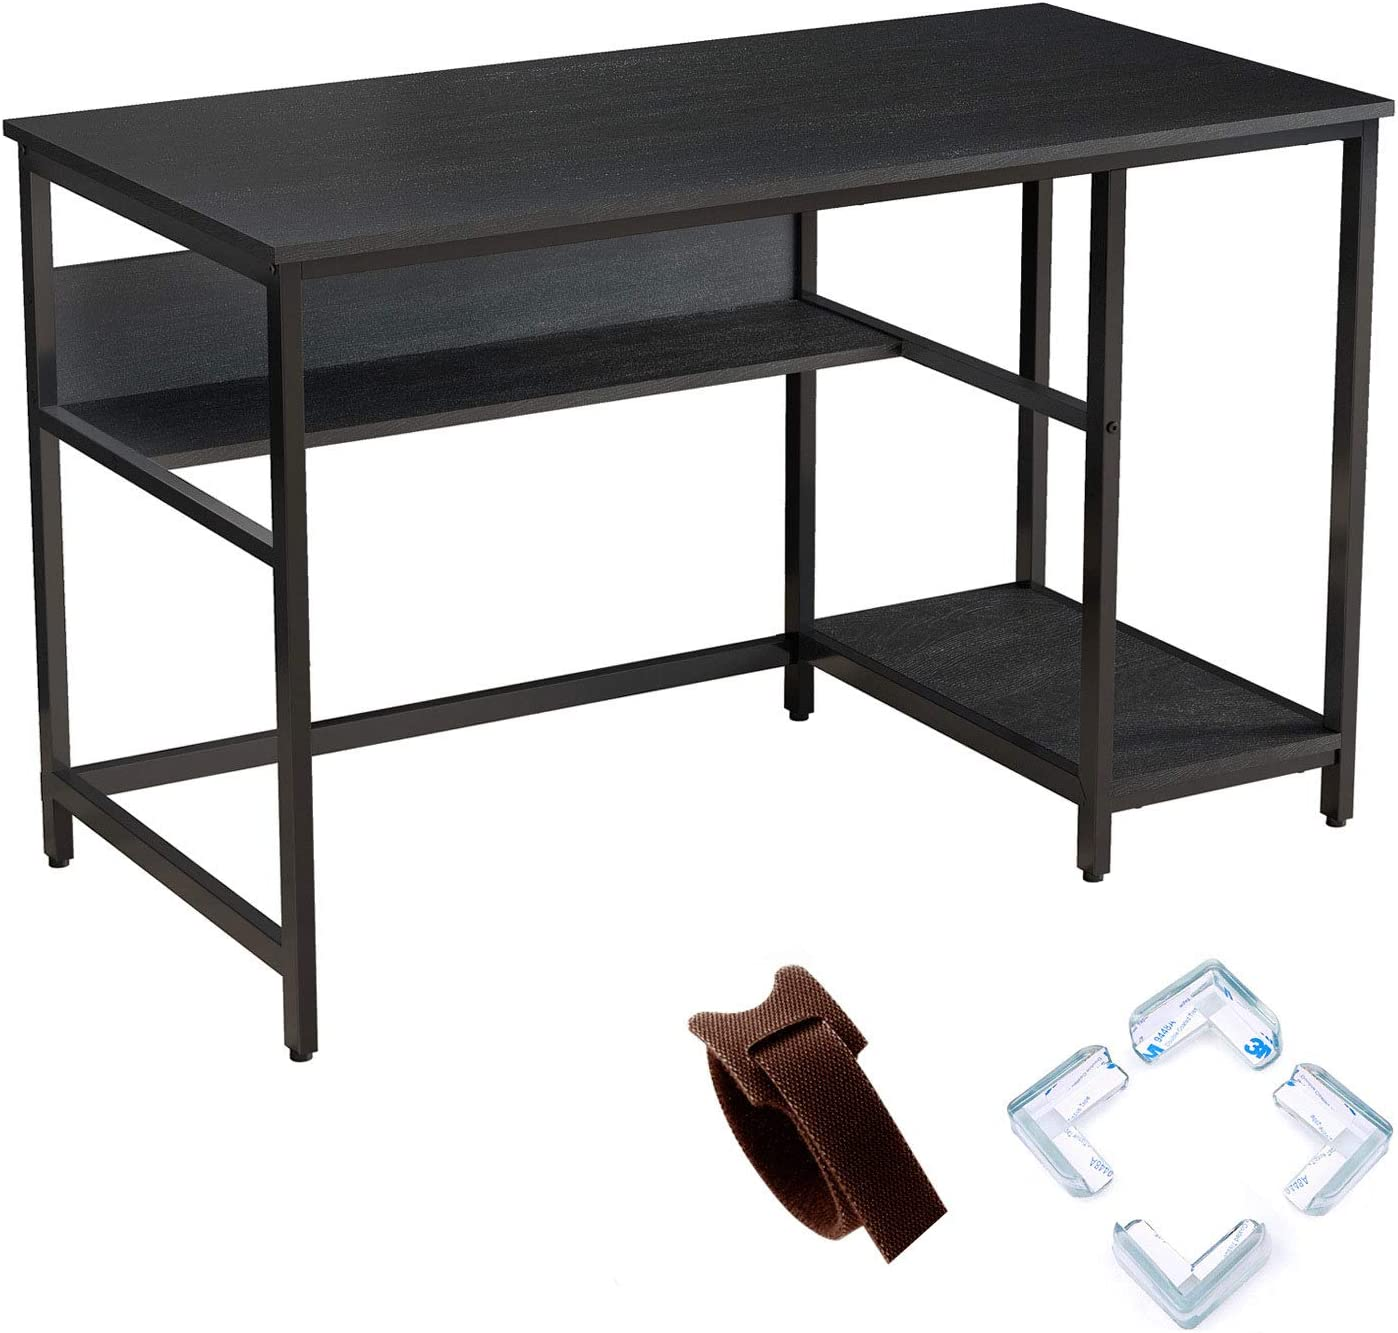 "Rolanstar Black Computer Desk, 55"" Office Desk with 2 Storage Shelves with Corner Protectors, Study Table, Workstation,Business Style, Stable Metal Frame, CP001-B"